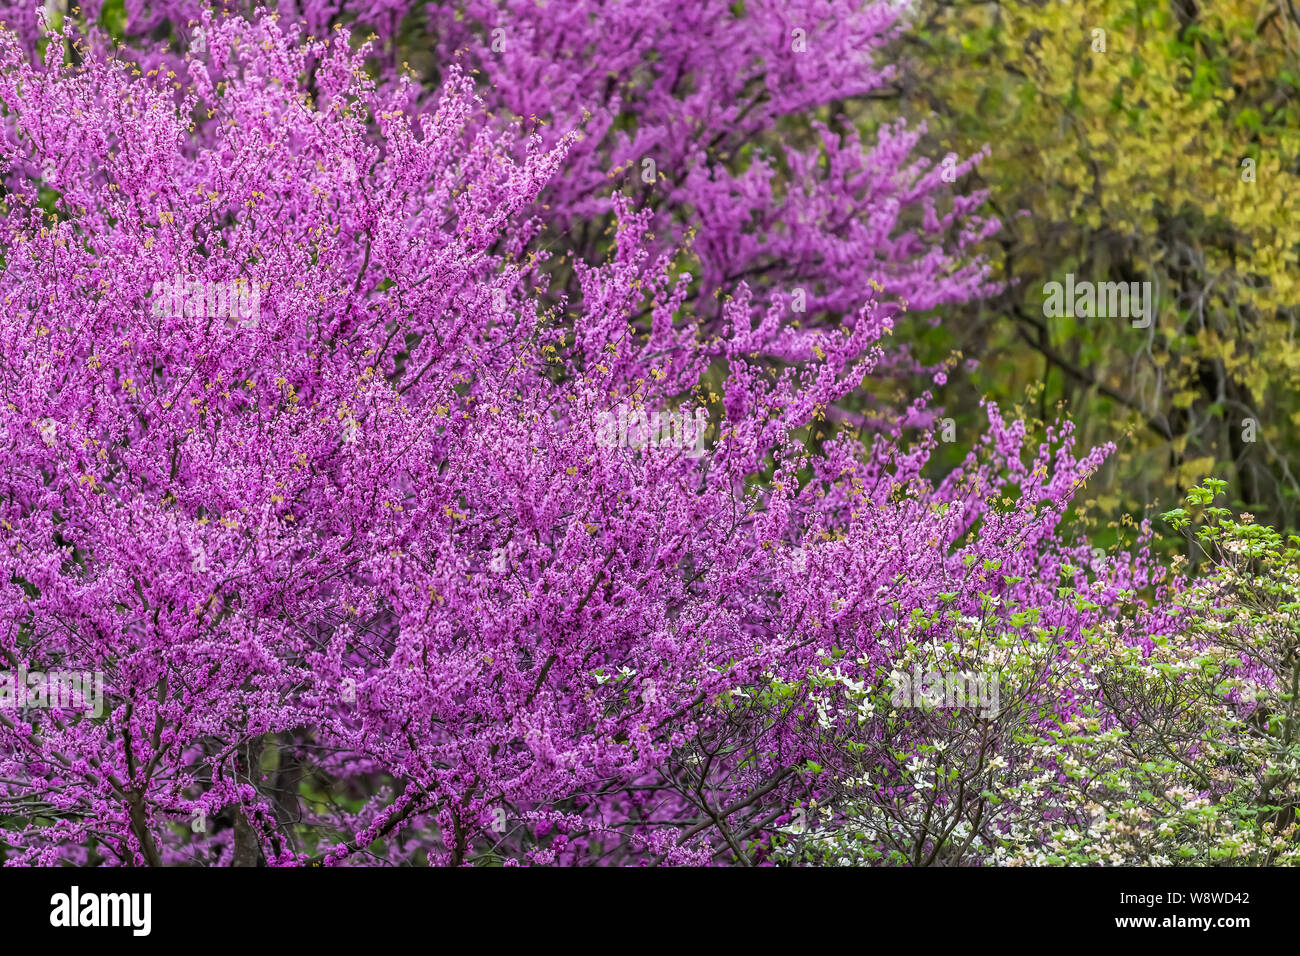 Redbud Tree Branches With Many Purple Flowers Blossom Blooming In